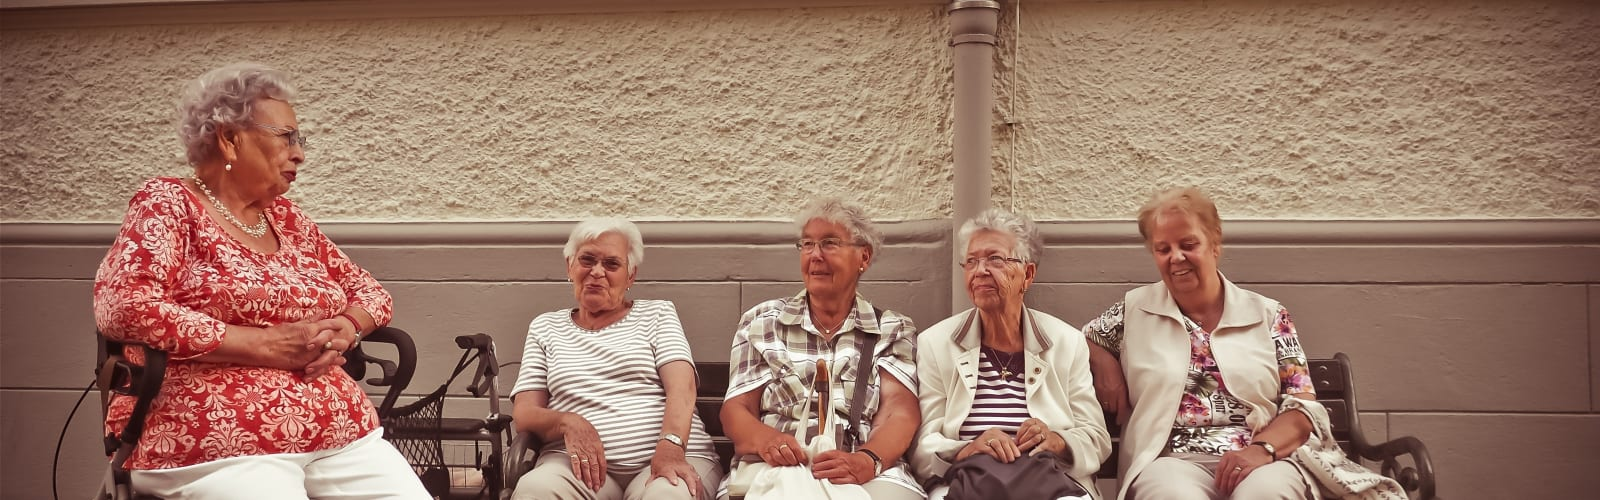 Older women sitting on bench